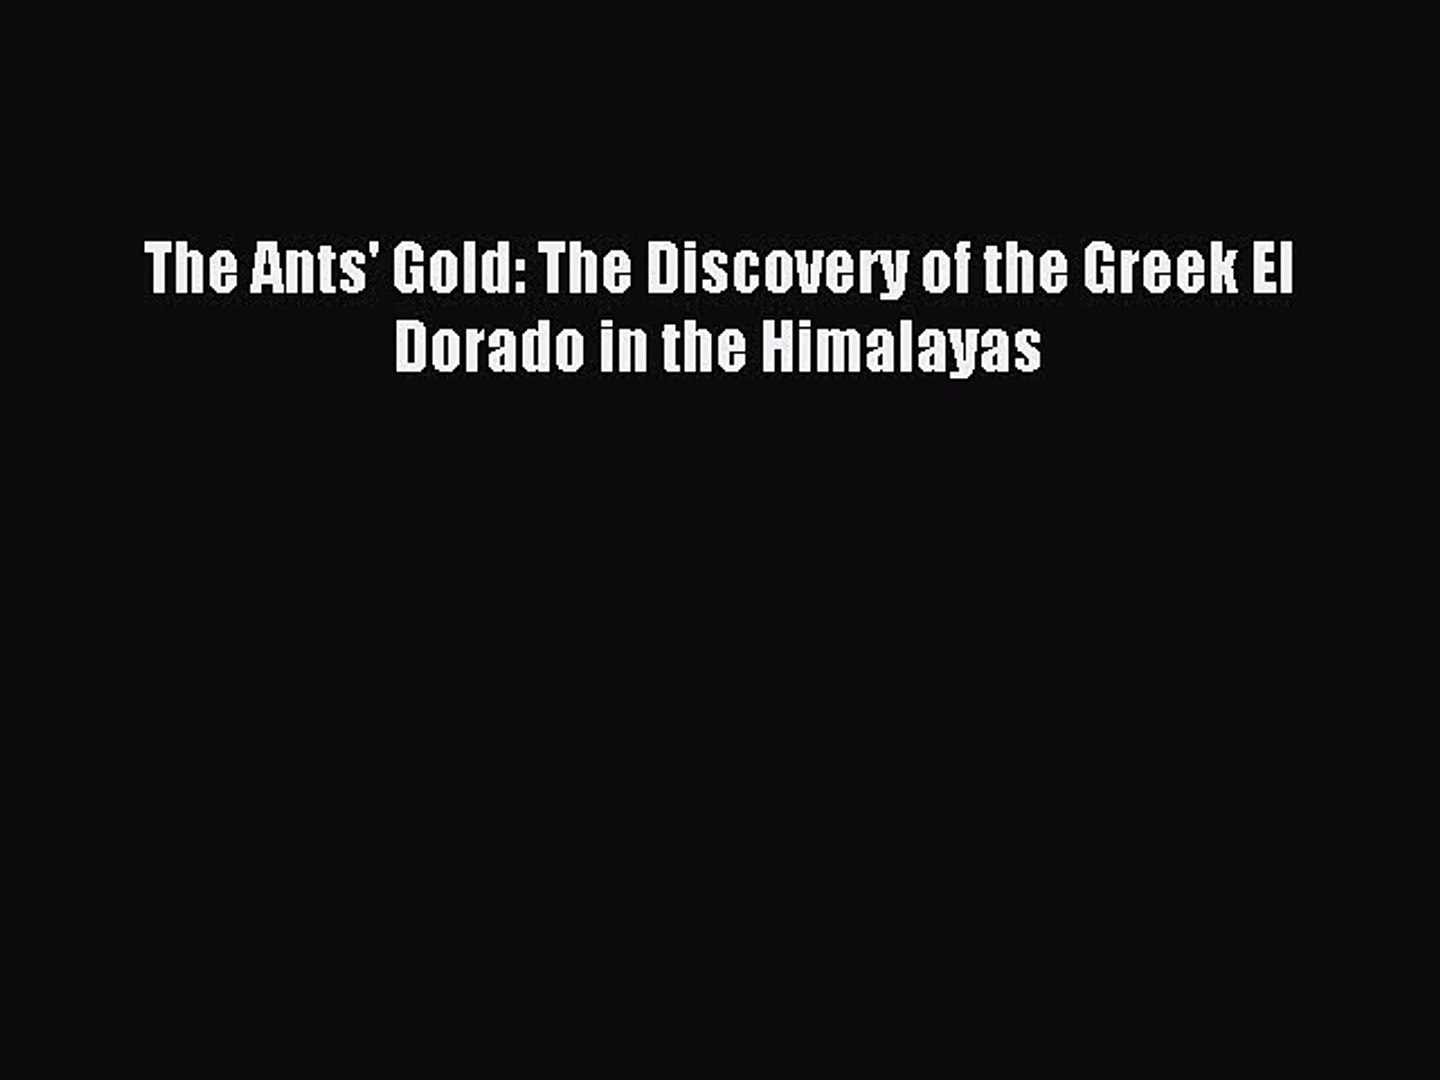 (PDF Download) The Ants' Gold: The Discovery of the Greek El Dorado in the Himalayas Download